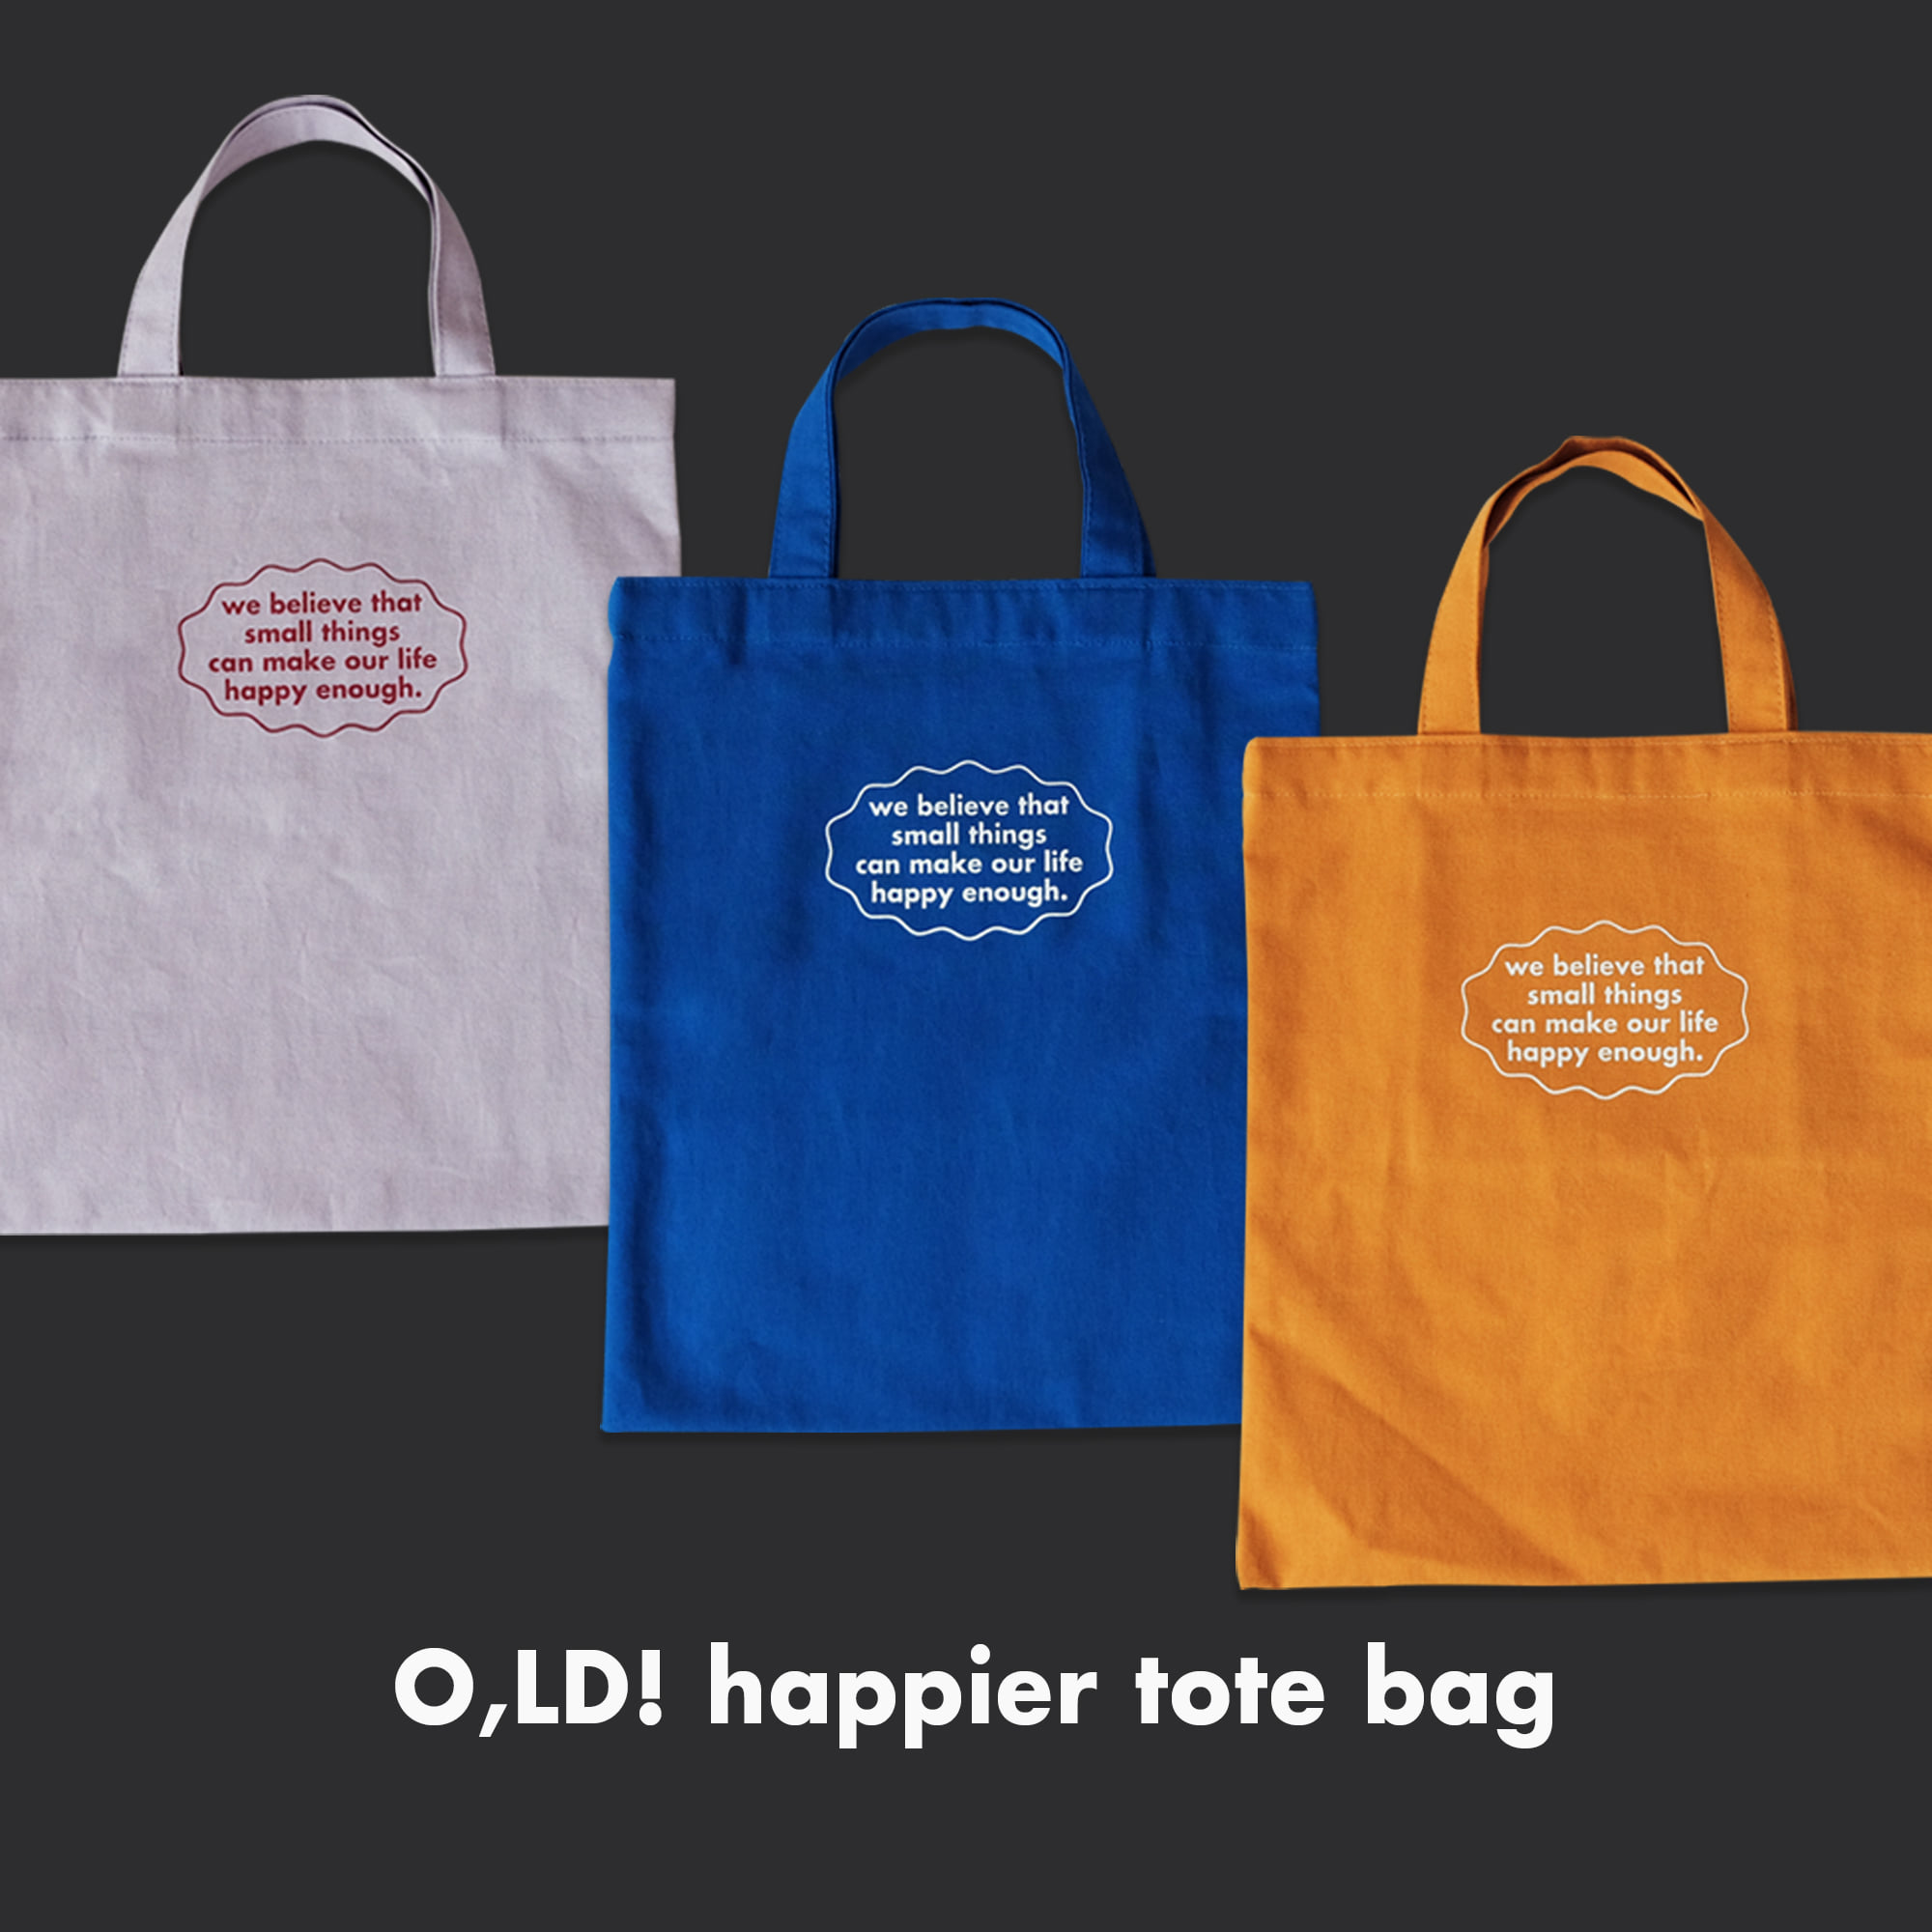 [Bag] Happier tote bag